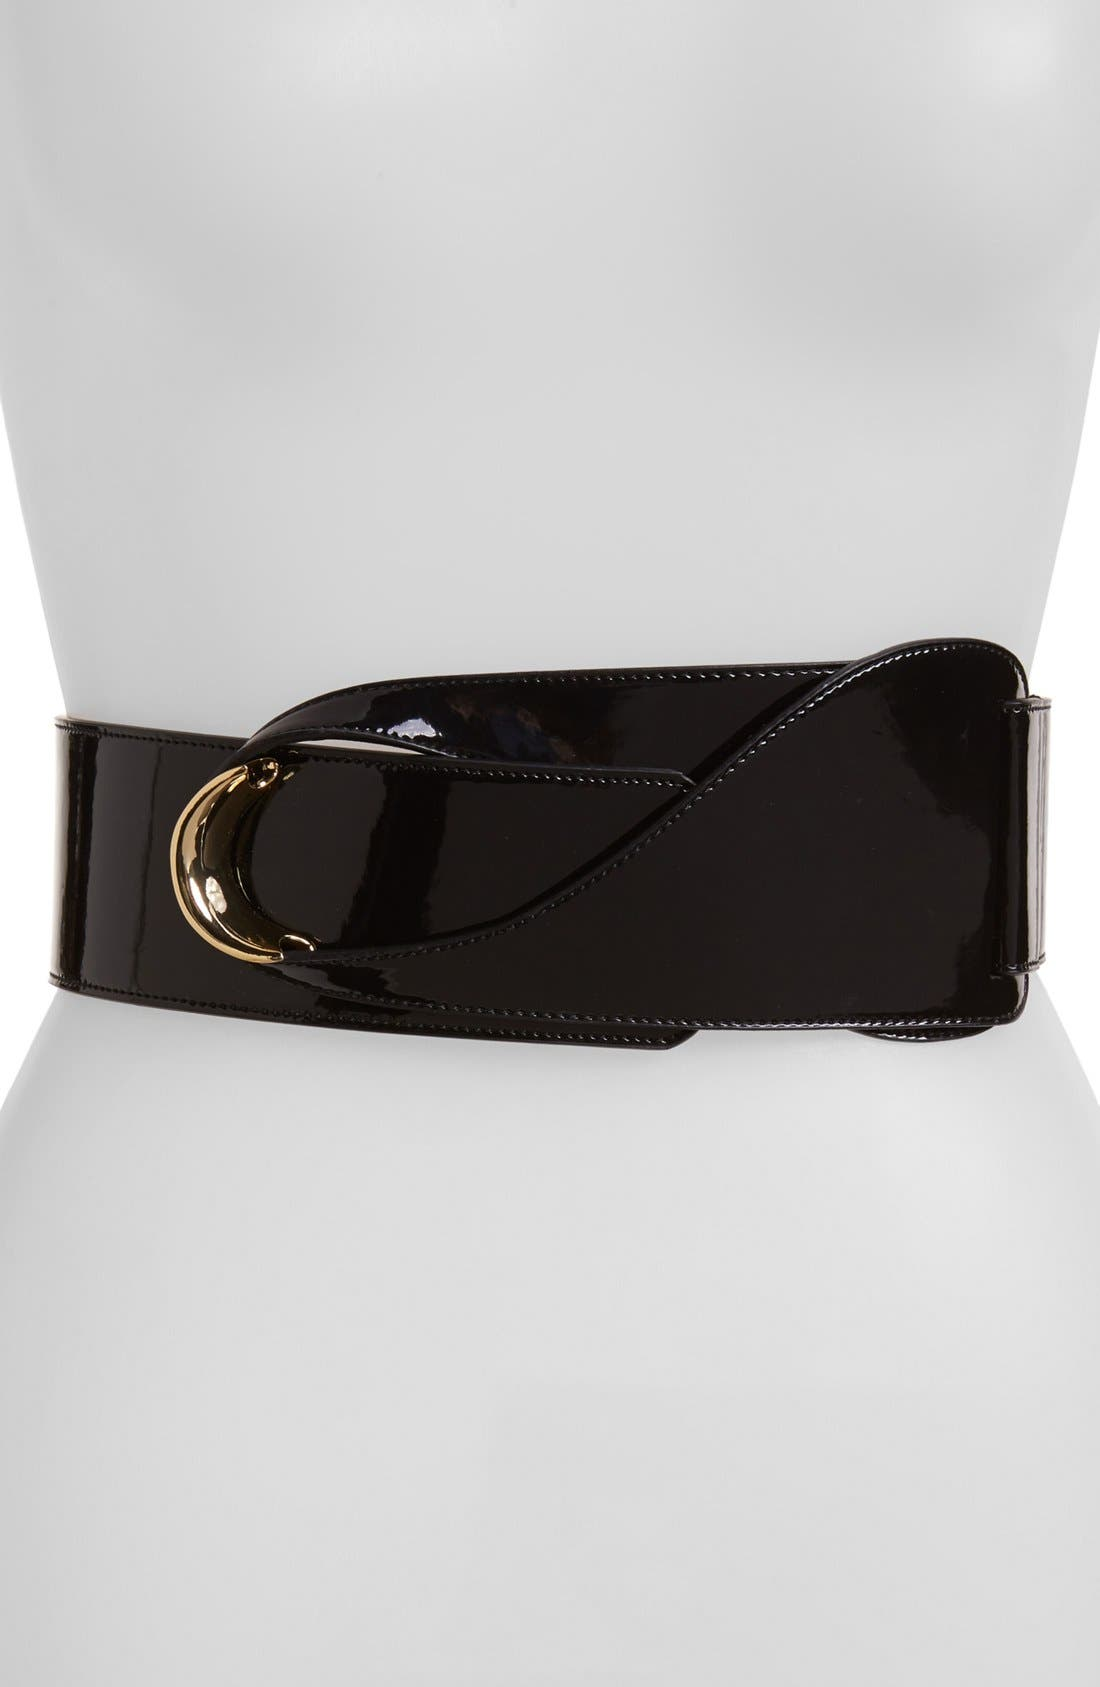 Main Image - Lauren Ralph Lauren Patent Leather Belt